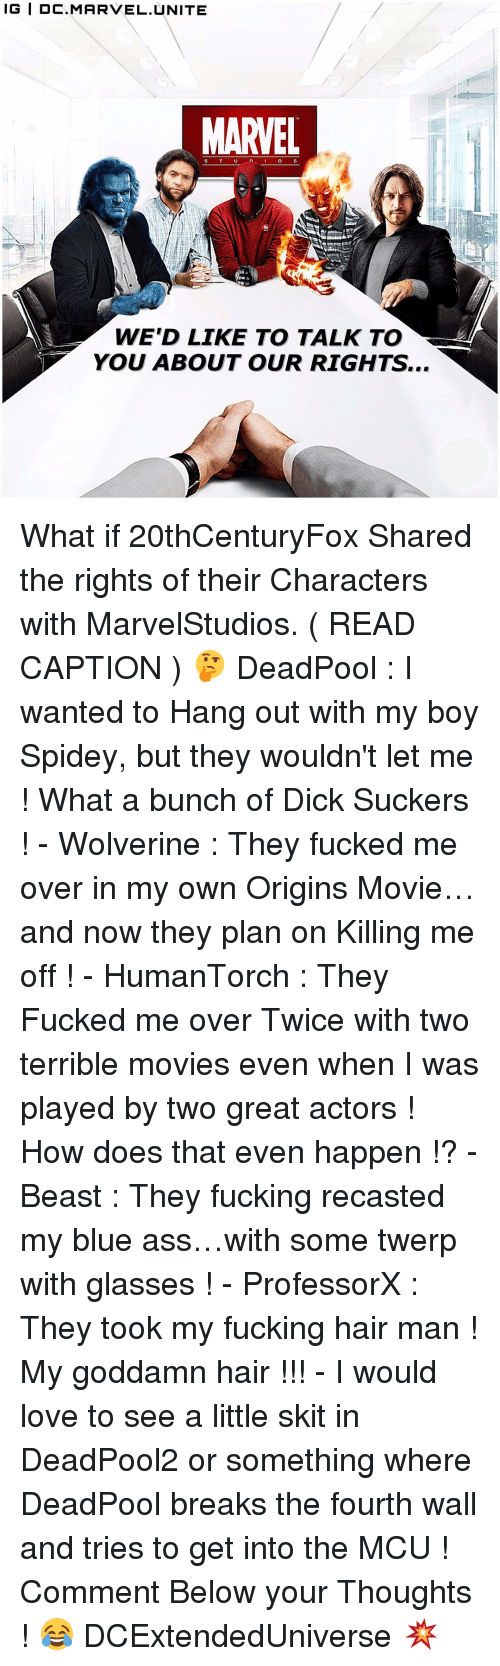 Memes, Wolverine, and Glasses: IG IDC. MARVEL UNITE  MARVEL  WE'D LIKE TO TALK TO  YOU ABOUT OUR RIGHTS... What if 20thCenturyFox Shared the rights of their Characters with MarvelStudios. ( READ CAPTION ) 🤔 DeadPool : I wanted to Hang out with my boy Spidey, but they wouldn't let me ! What a bunch of Dick Suckers ! - Wolverine : They fucked me over in my own Origins Movie…and now they plan on Killing me off ! - HumanTorch : They Fucked me over Twice with two terrible movies even when I was played by two great actors ! How does that even happen !? - Beast : They fucking recasted my blue ass…with some twerp with glasses ! - ProfessorX : They took my fucking hair man ! My goddamn hair !!! - I would love to see a little skit in DeadPool2 or something where DeadPool breaks the fourth wall and tries to get into the MCU ! Comment Below your Thoughts ! 😂 DCExtendedUniverse 💥